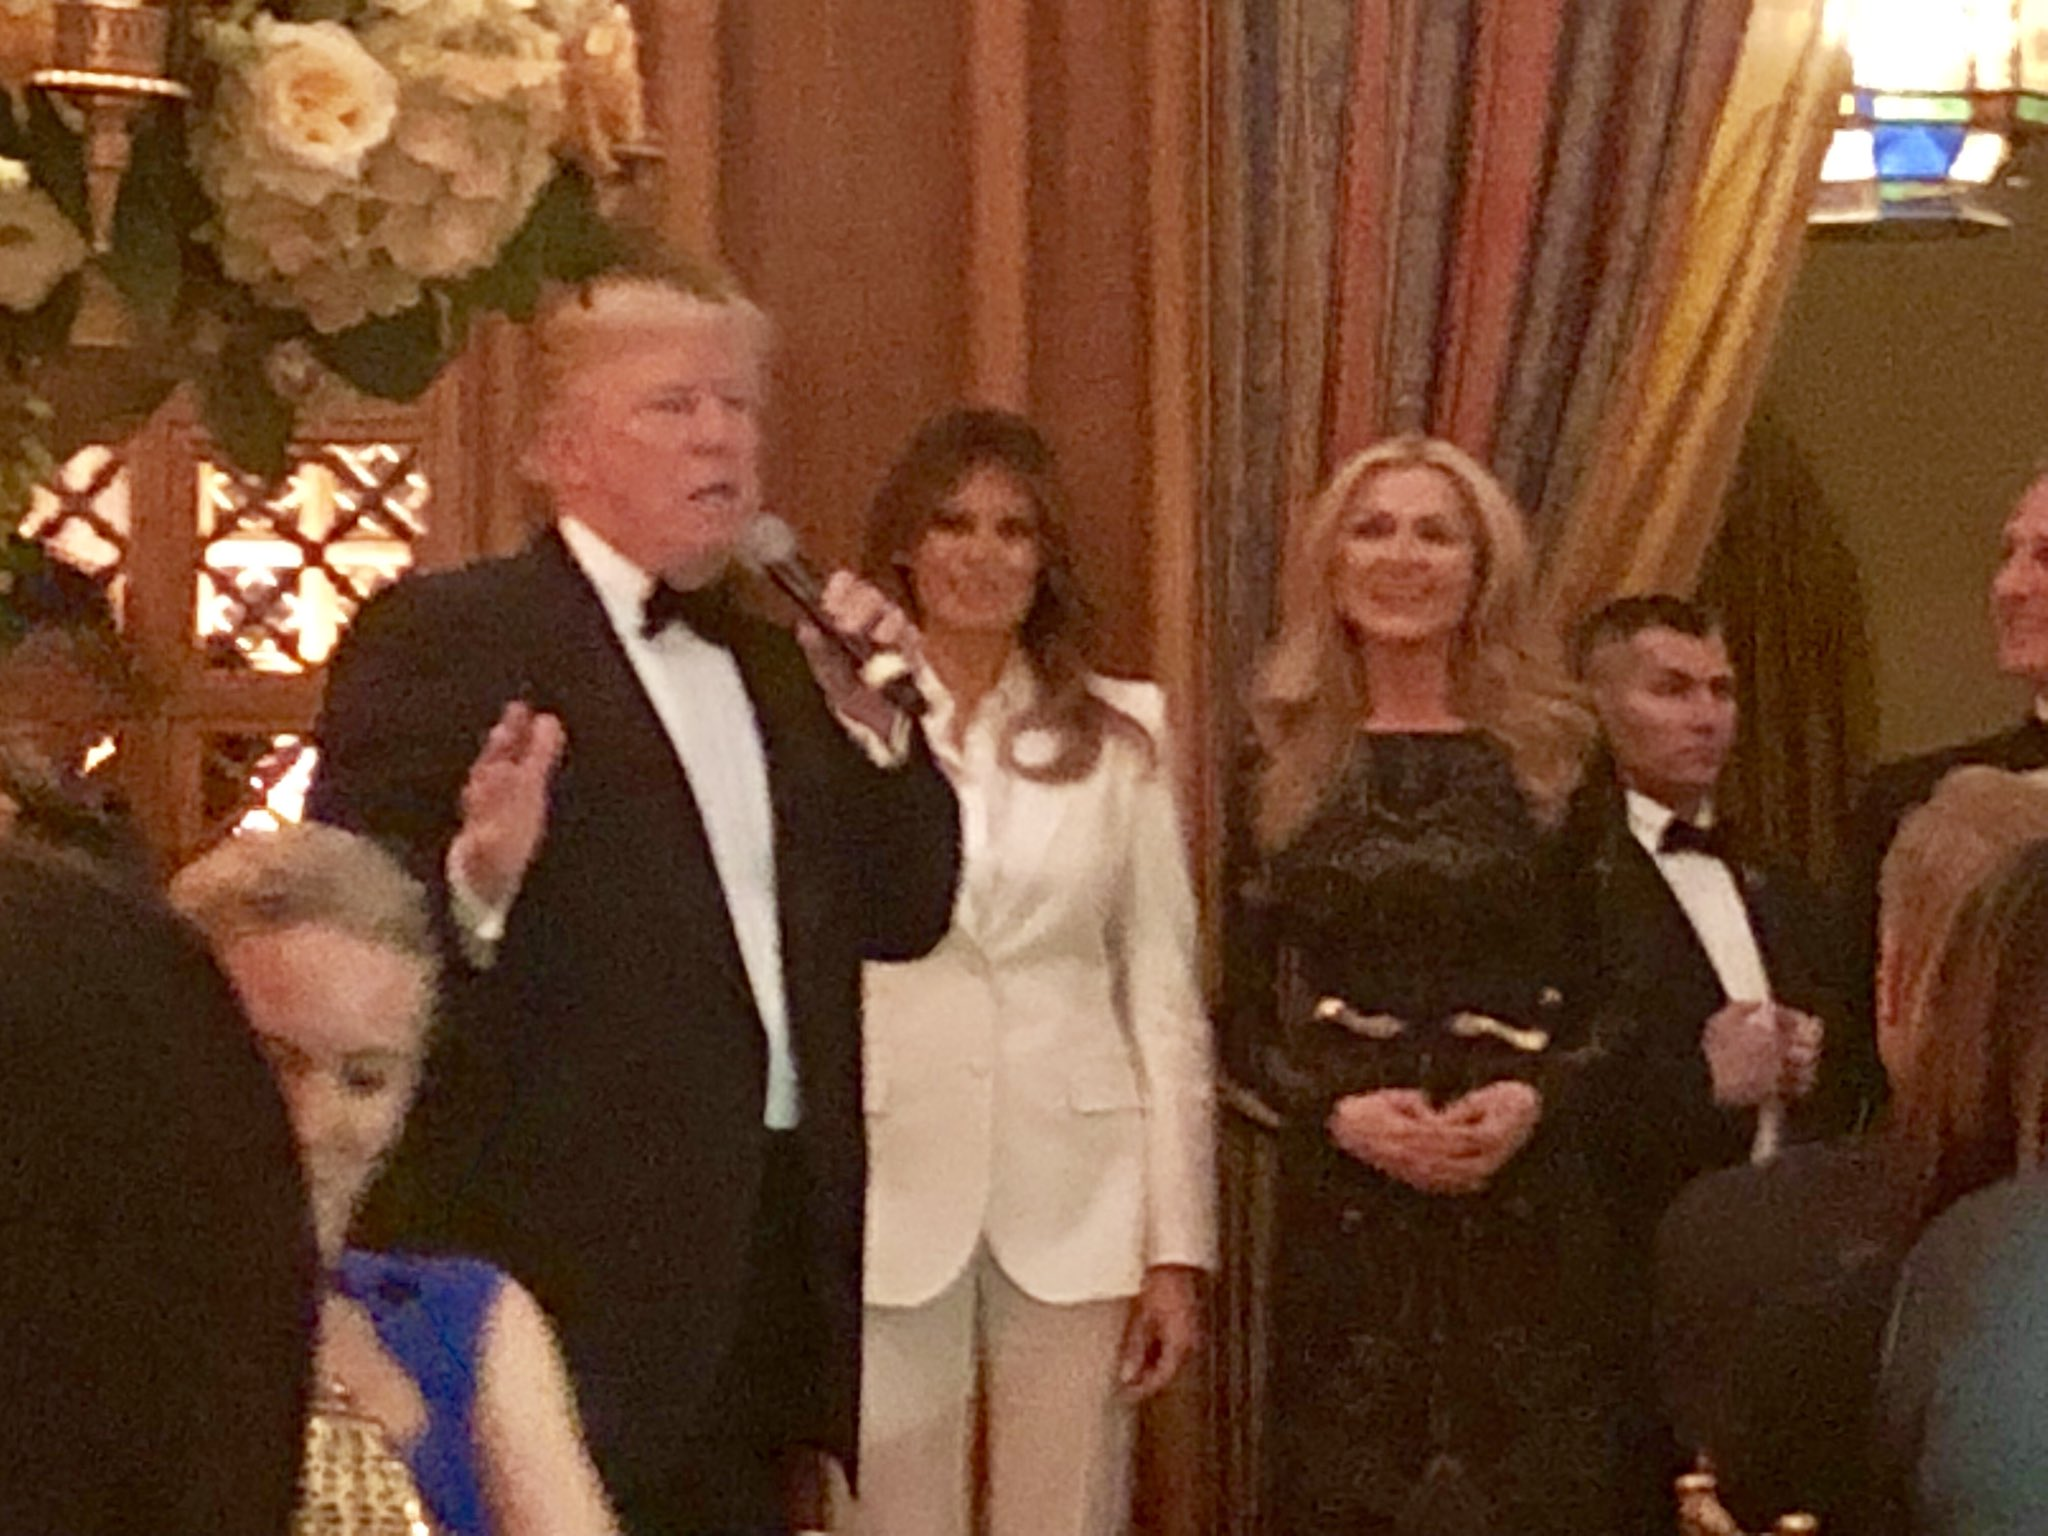 Great night honoring @FLOTUS & perfect ending w/ @POTUS announcing passage of budget—major step forward for tax cuts https://t.co/3icggLPvNf